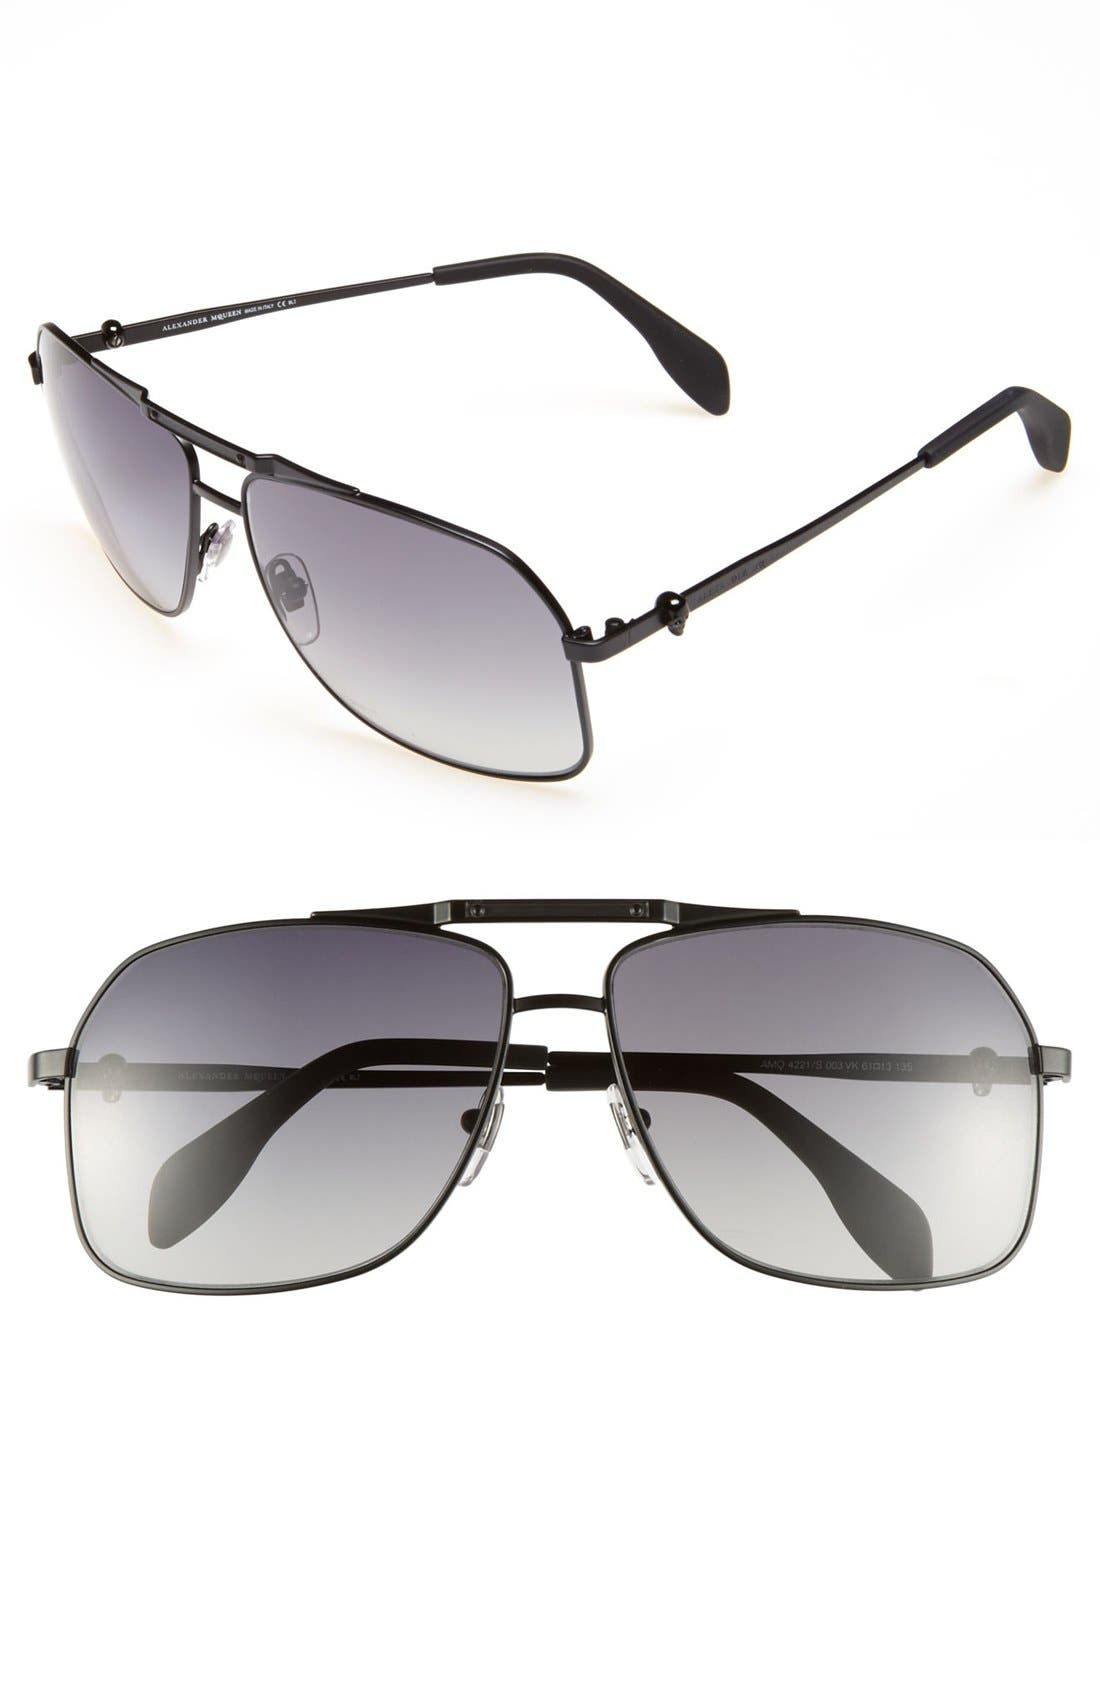 Main Image - Alexander McQueen 61mm Aviator Sunglasses (Online Only)